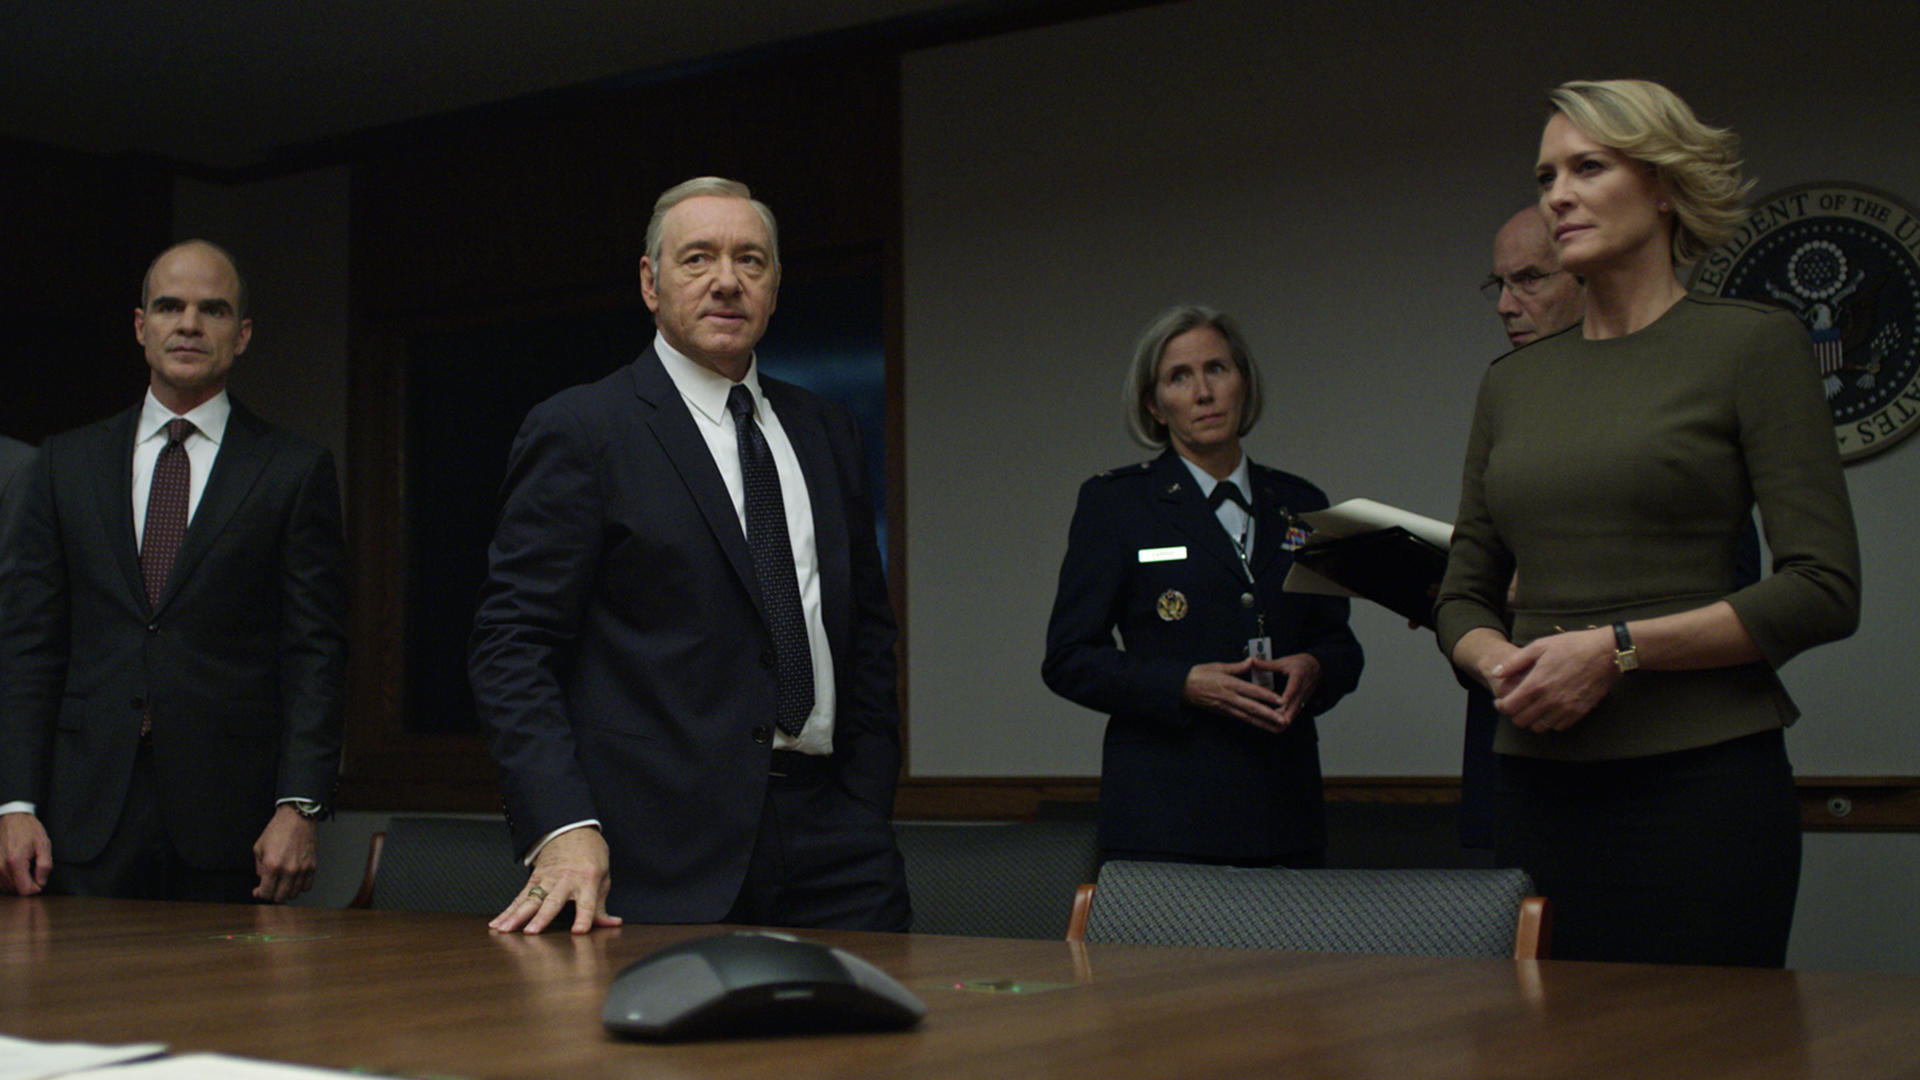 s05e6 chapter 58 house of cards